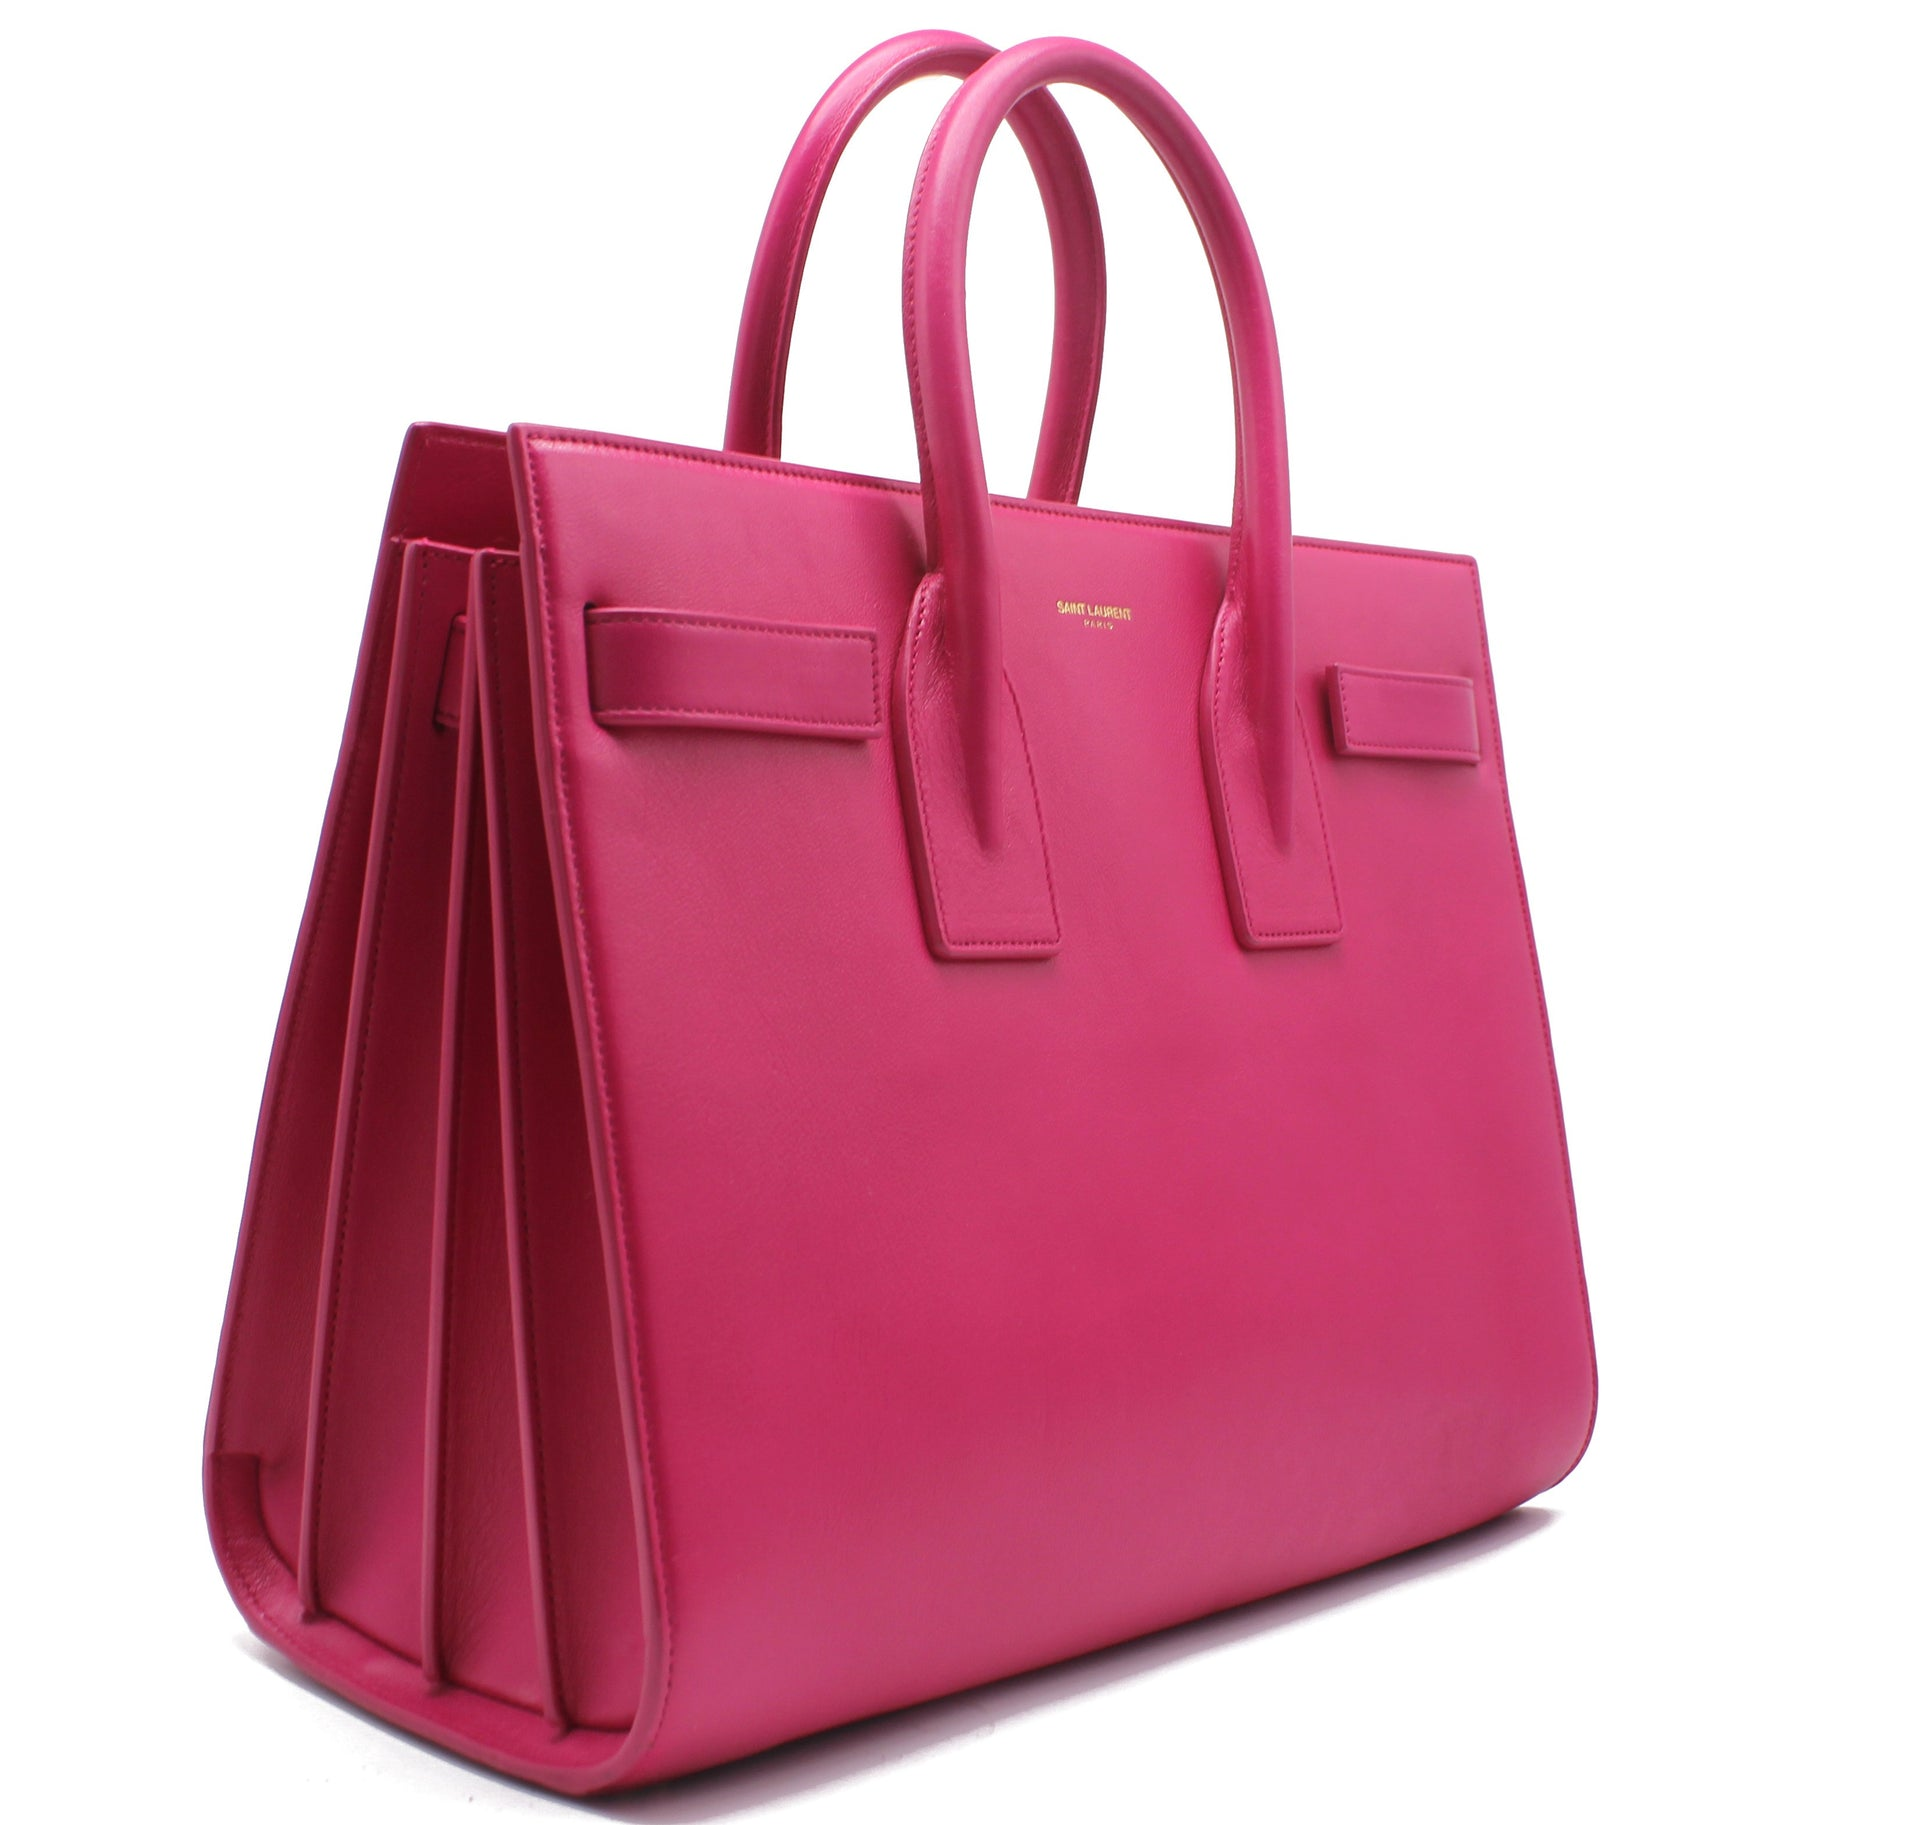 Saint Laurent Sac de Jour Medium Fuchsia Pebbled Leather Tote